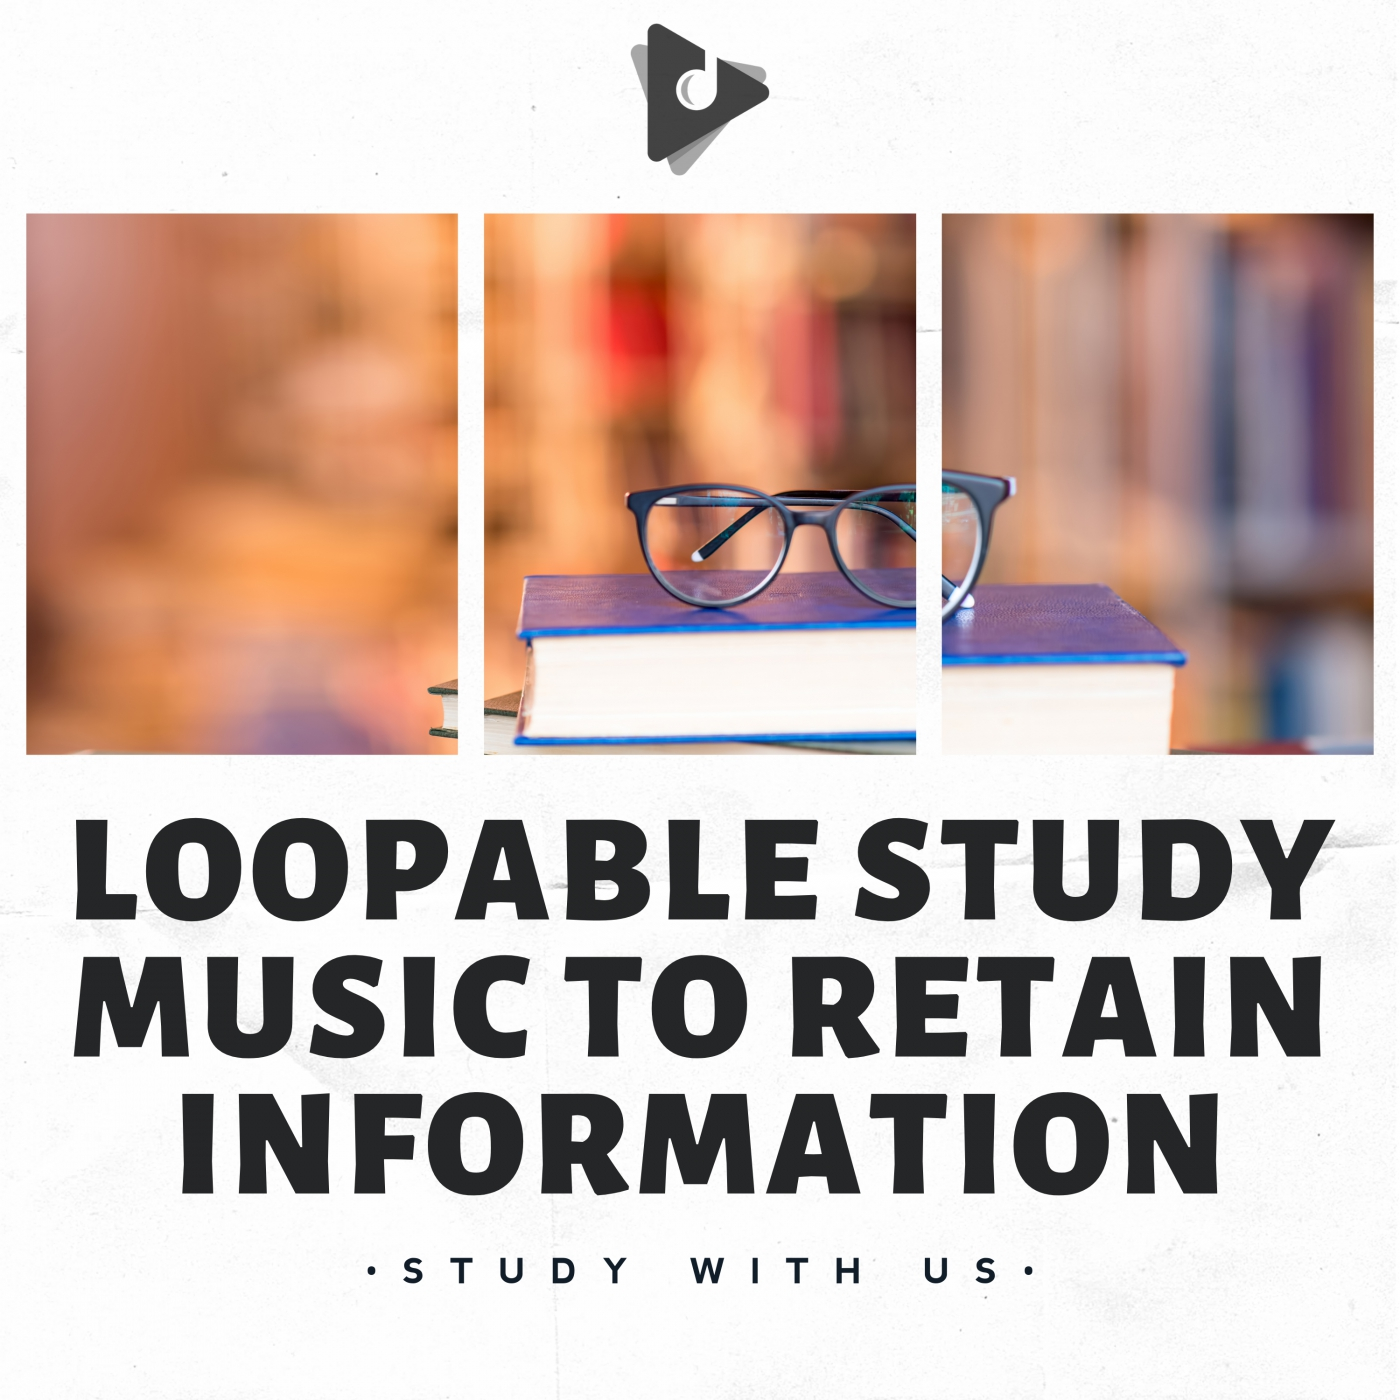 Loopable Study Music to Retain Information